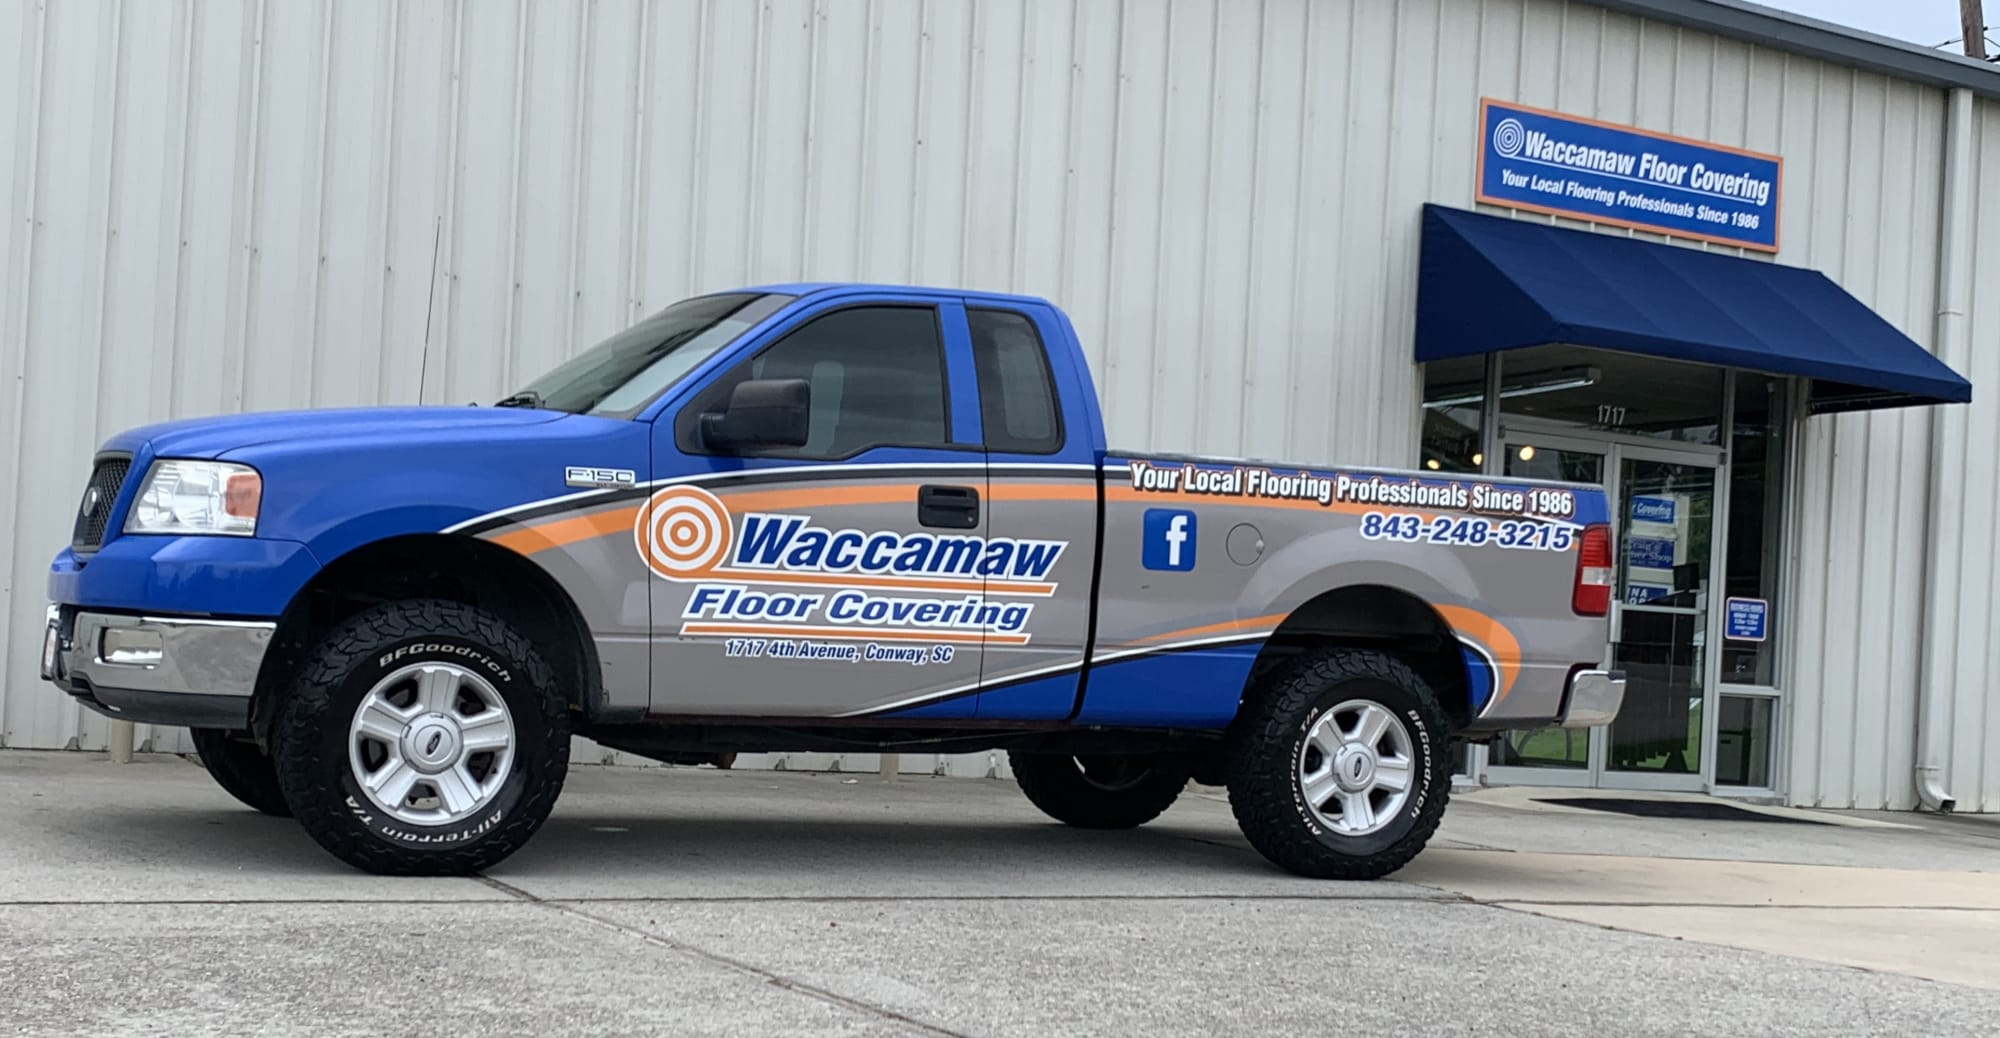 Waccamaw Floor Covering - 1717 4th Ave Conway, SC 29527